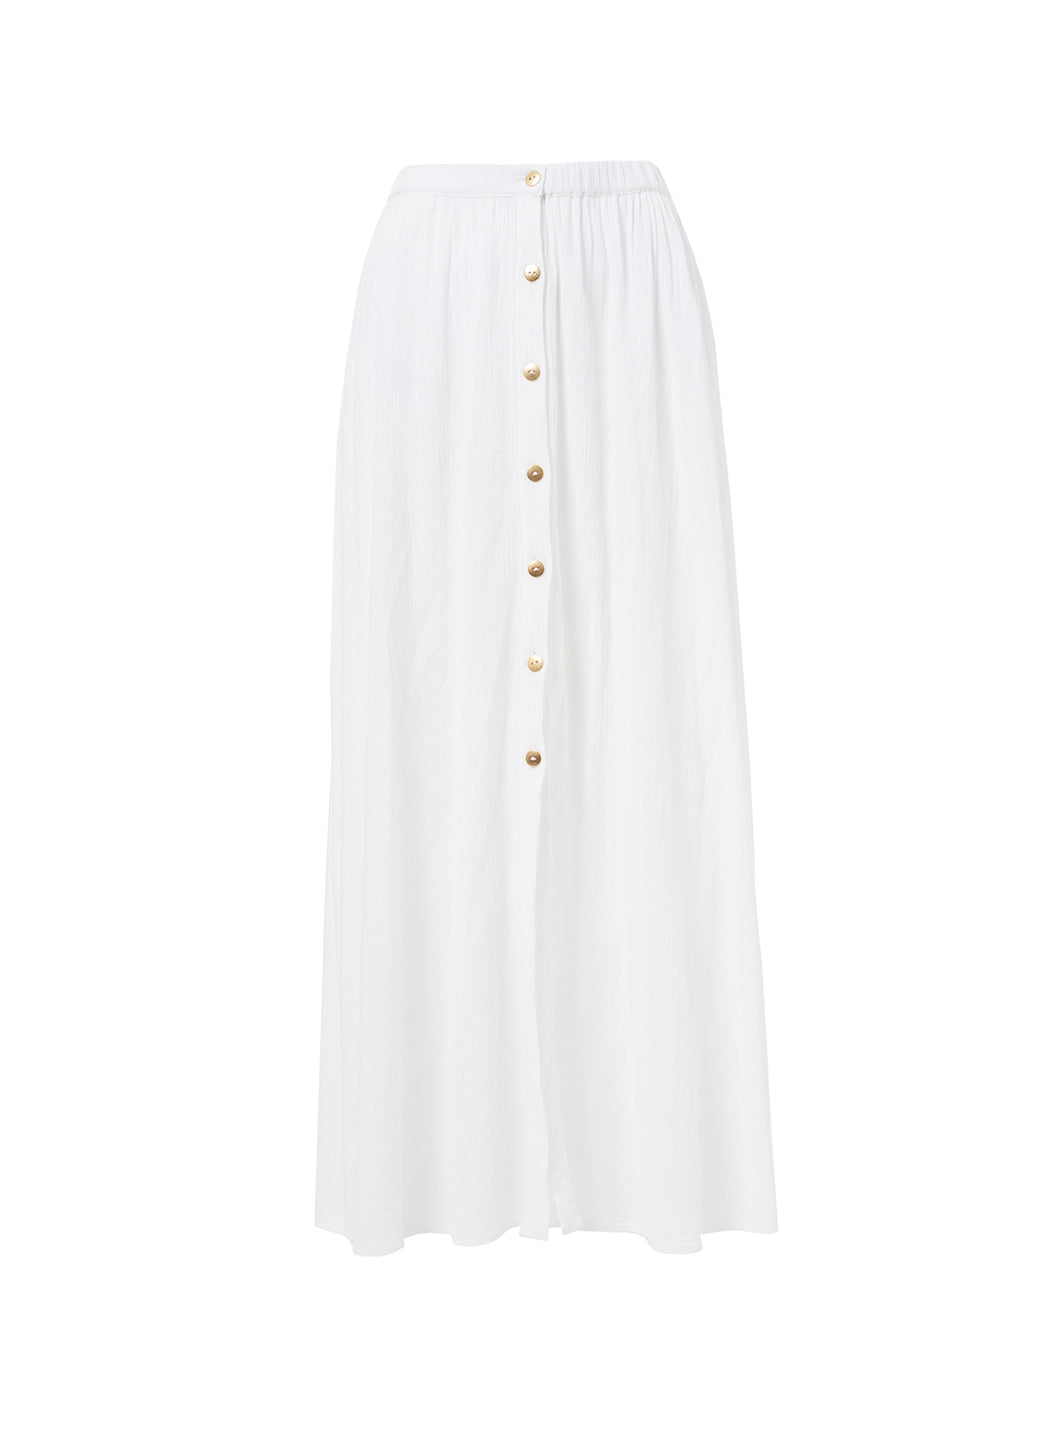 Dru White Button-Down Maxi Skir - Melissa Odabash Beachwear